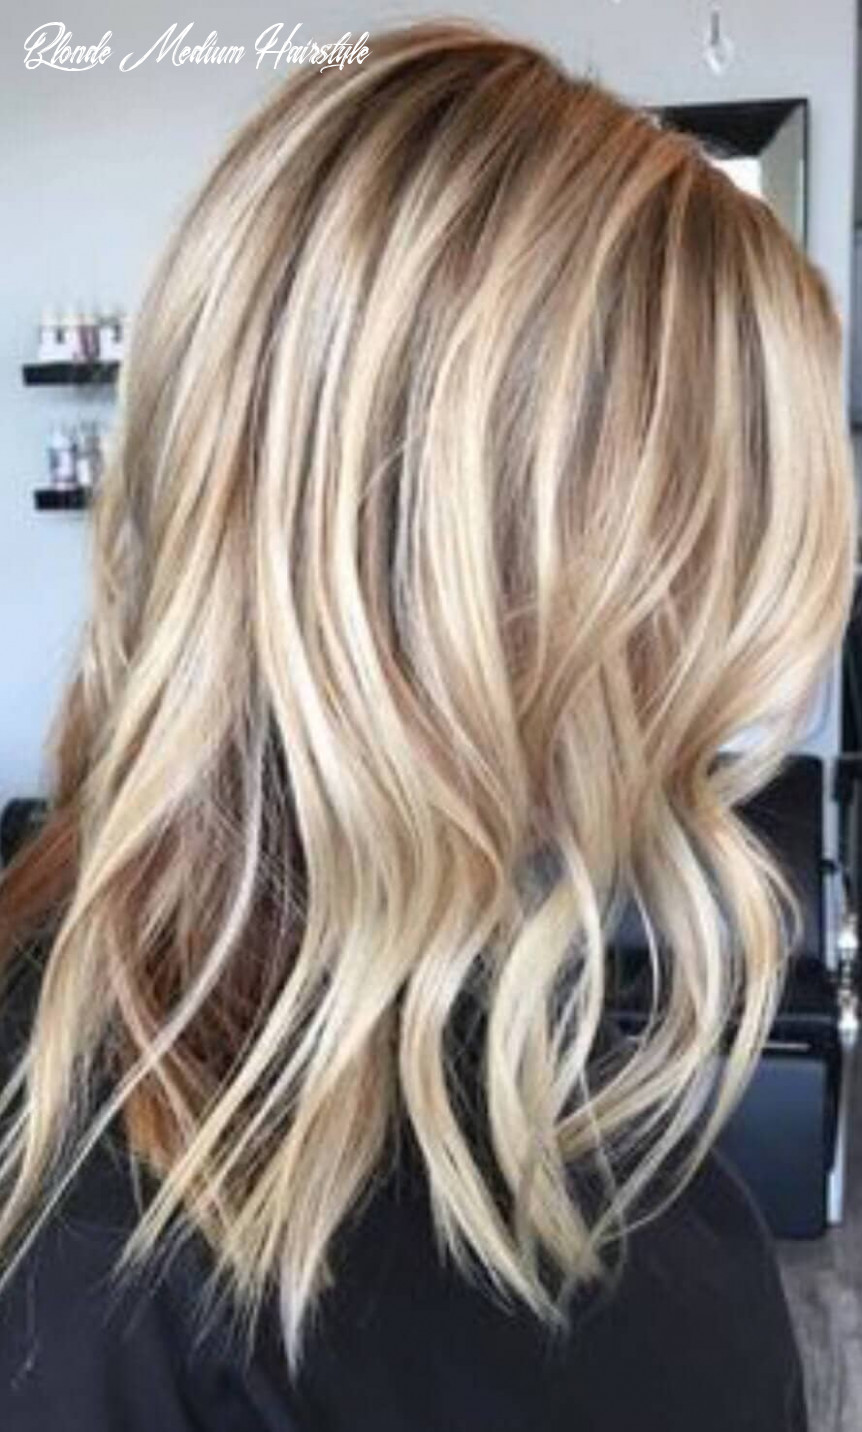 12 Best Blond Hairstyles That Will Make You Look Young Again